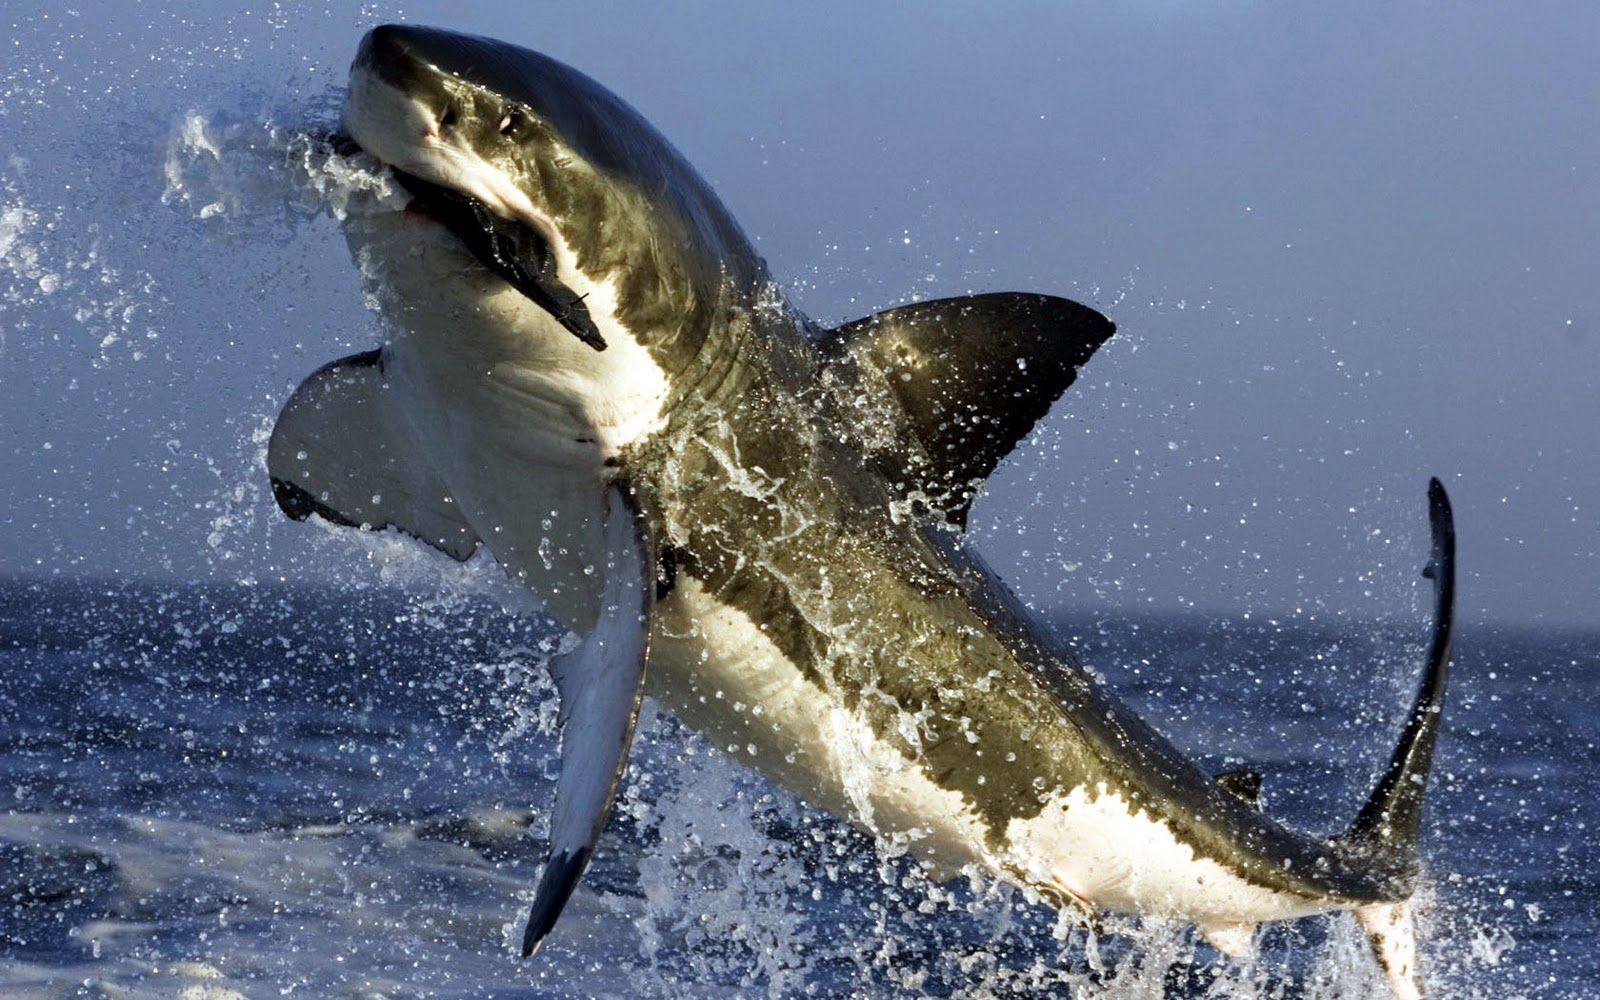 Shark jumps out of water to eat a fish   nature and life   Shark